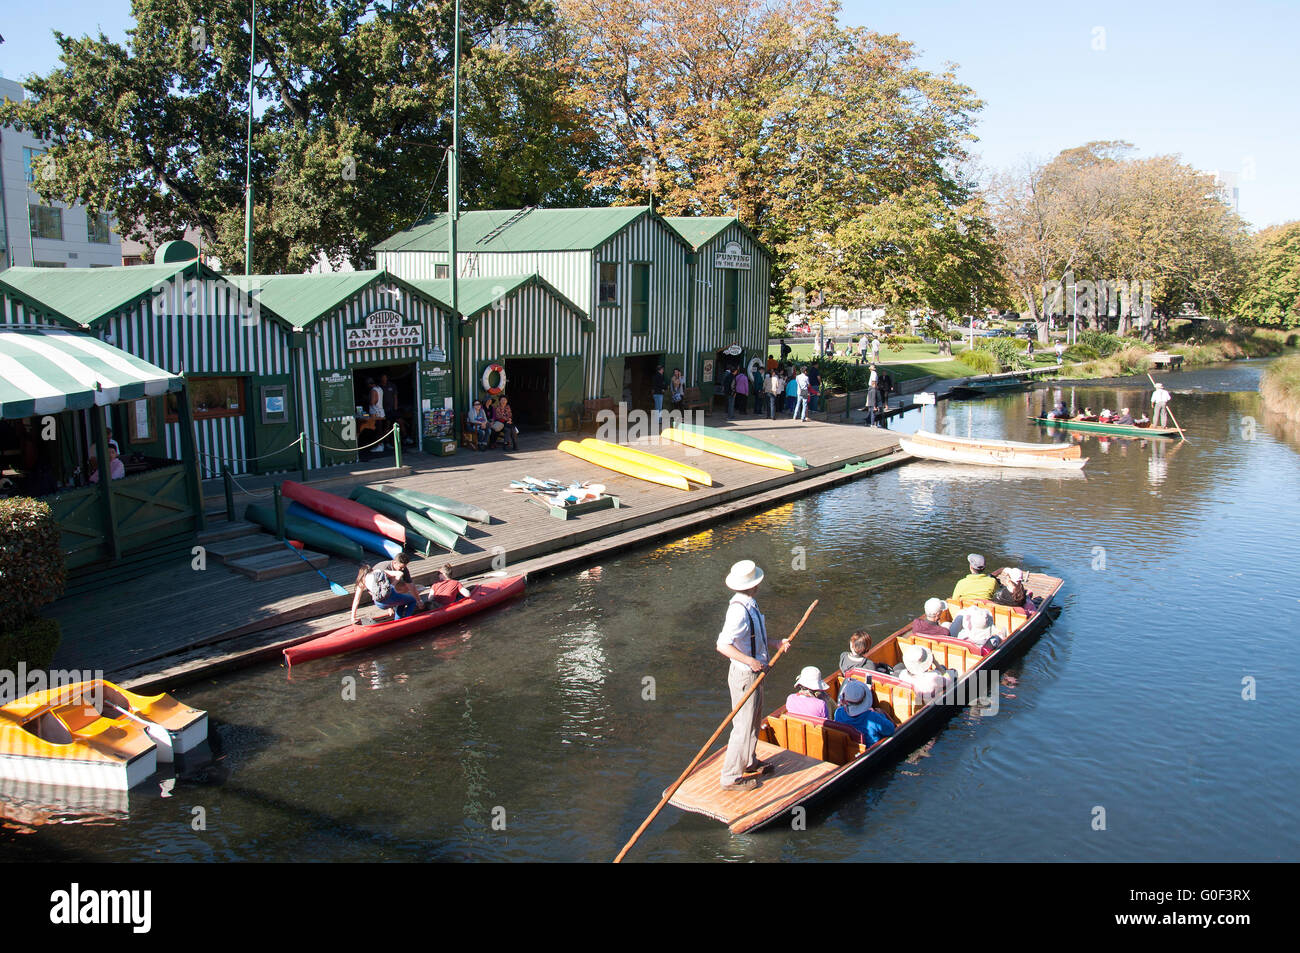 Punting on River Avon at Antigua Boat Sheds, Cambridge Terrace, Christchurch, Canterbury, New Zealand - Stock Image